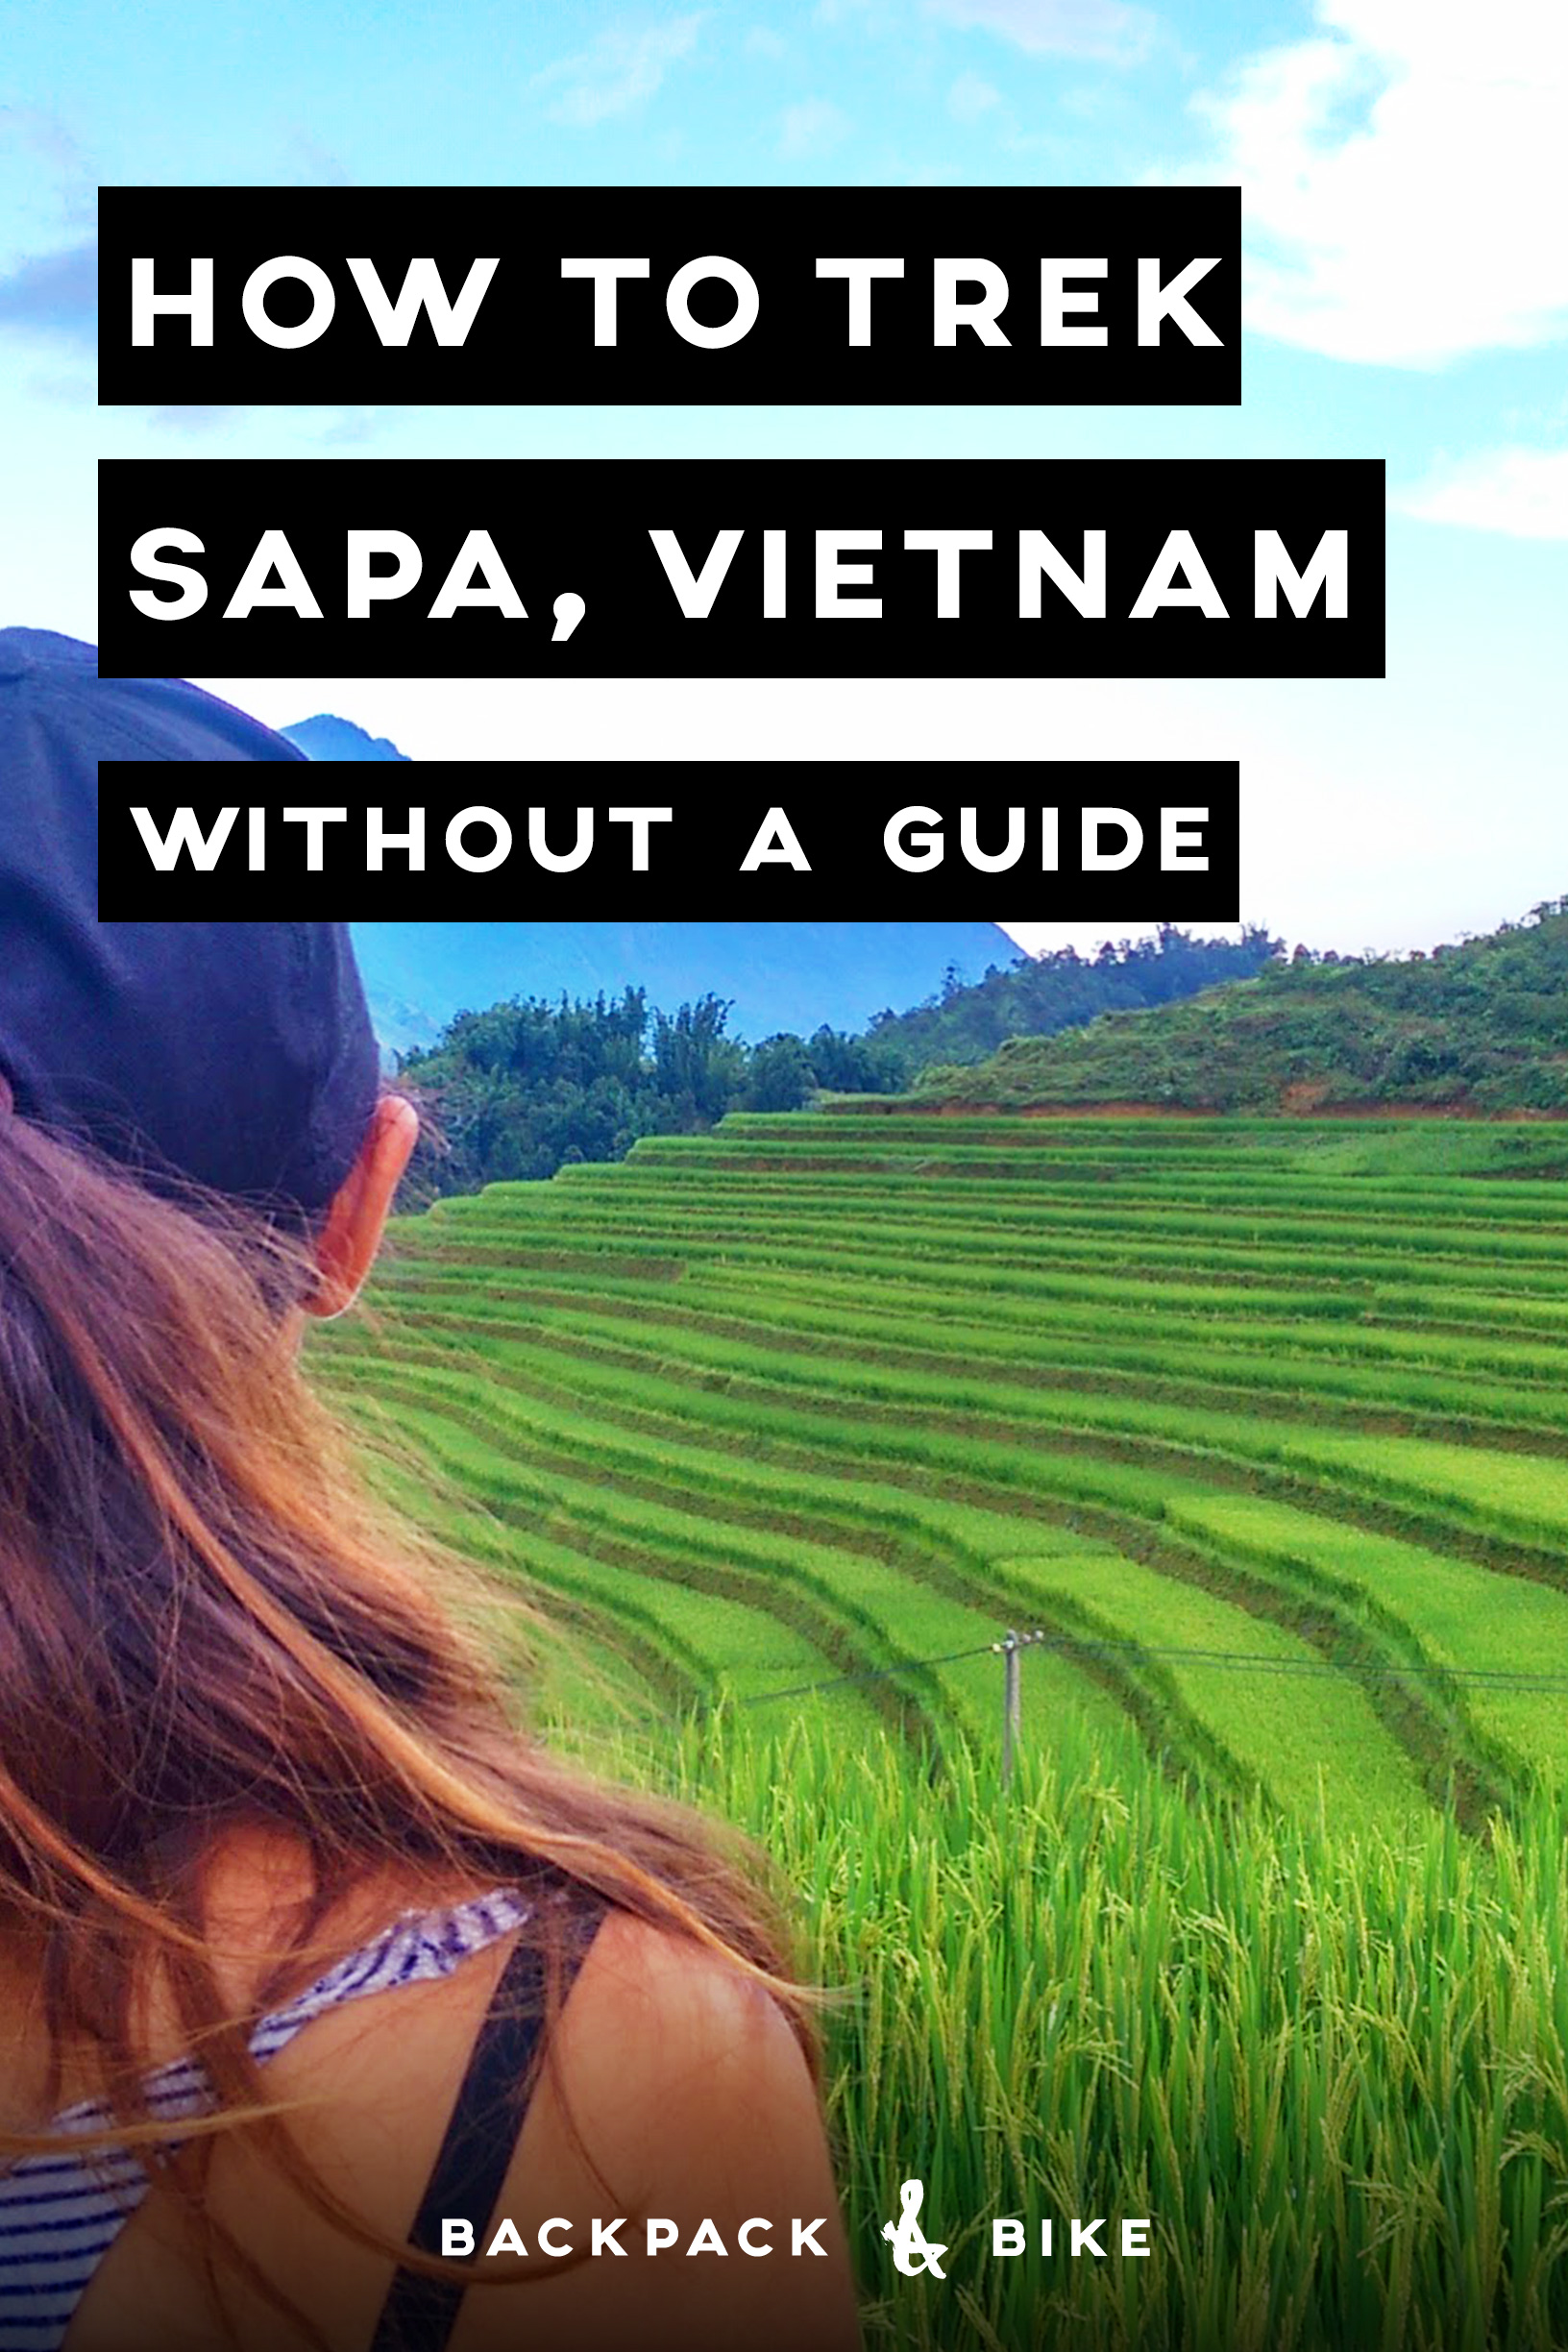 How to Trek Sapa Without a Guide - Backpack & Bike